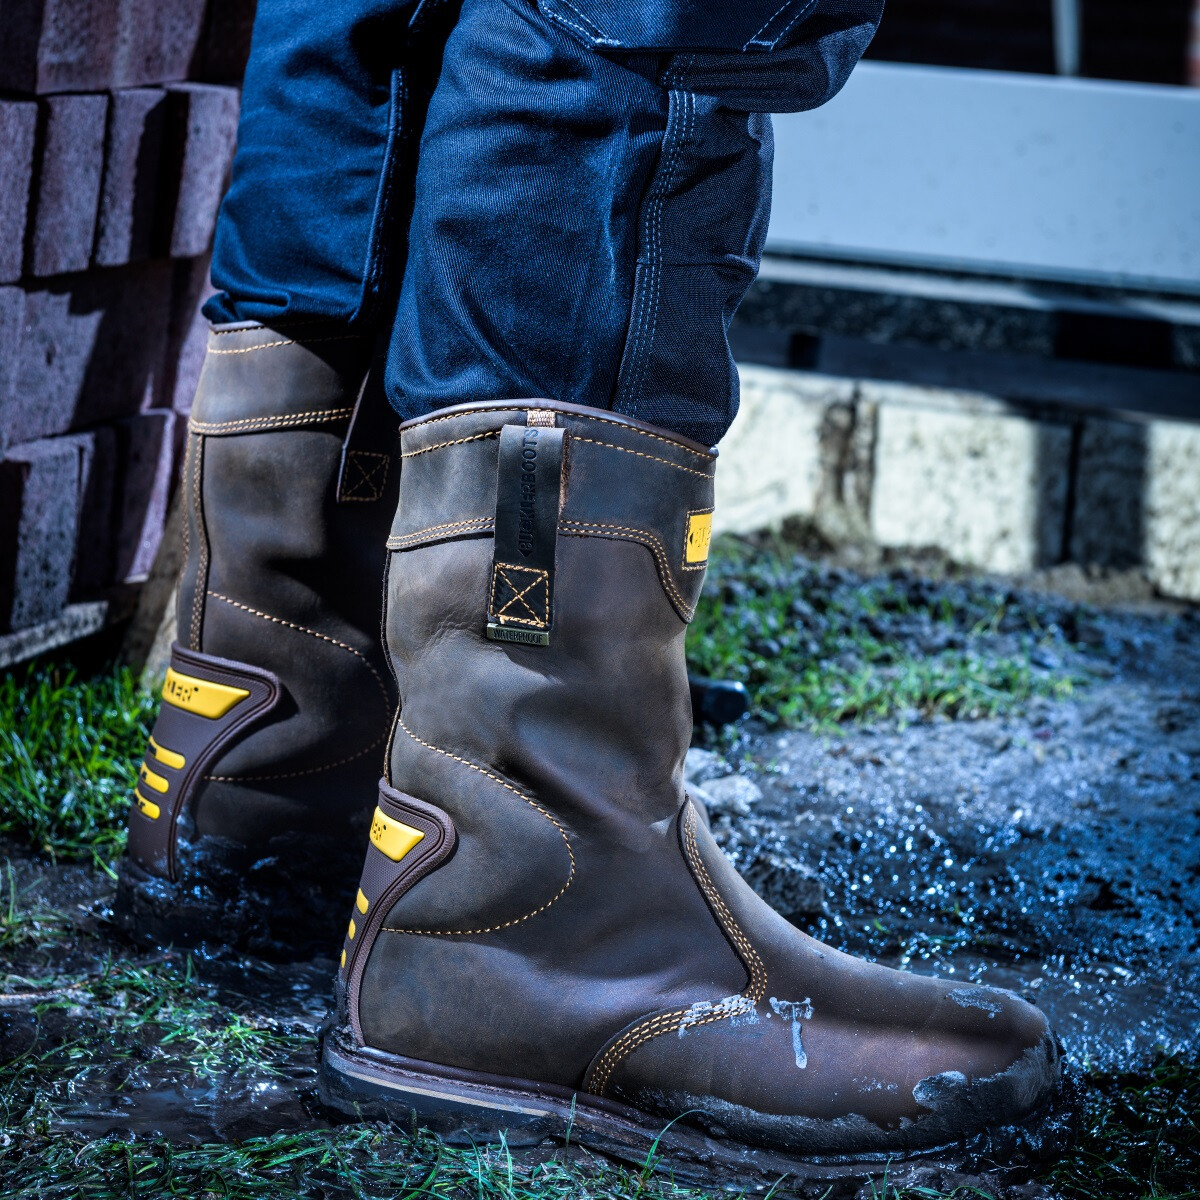 0d77b3e846a Buckler Boots B701SMWP Hard as Nails Brown Safety Rigger Boot S3 HRO WRU SRC